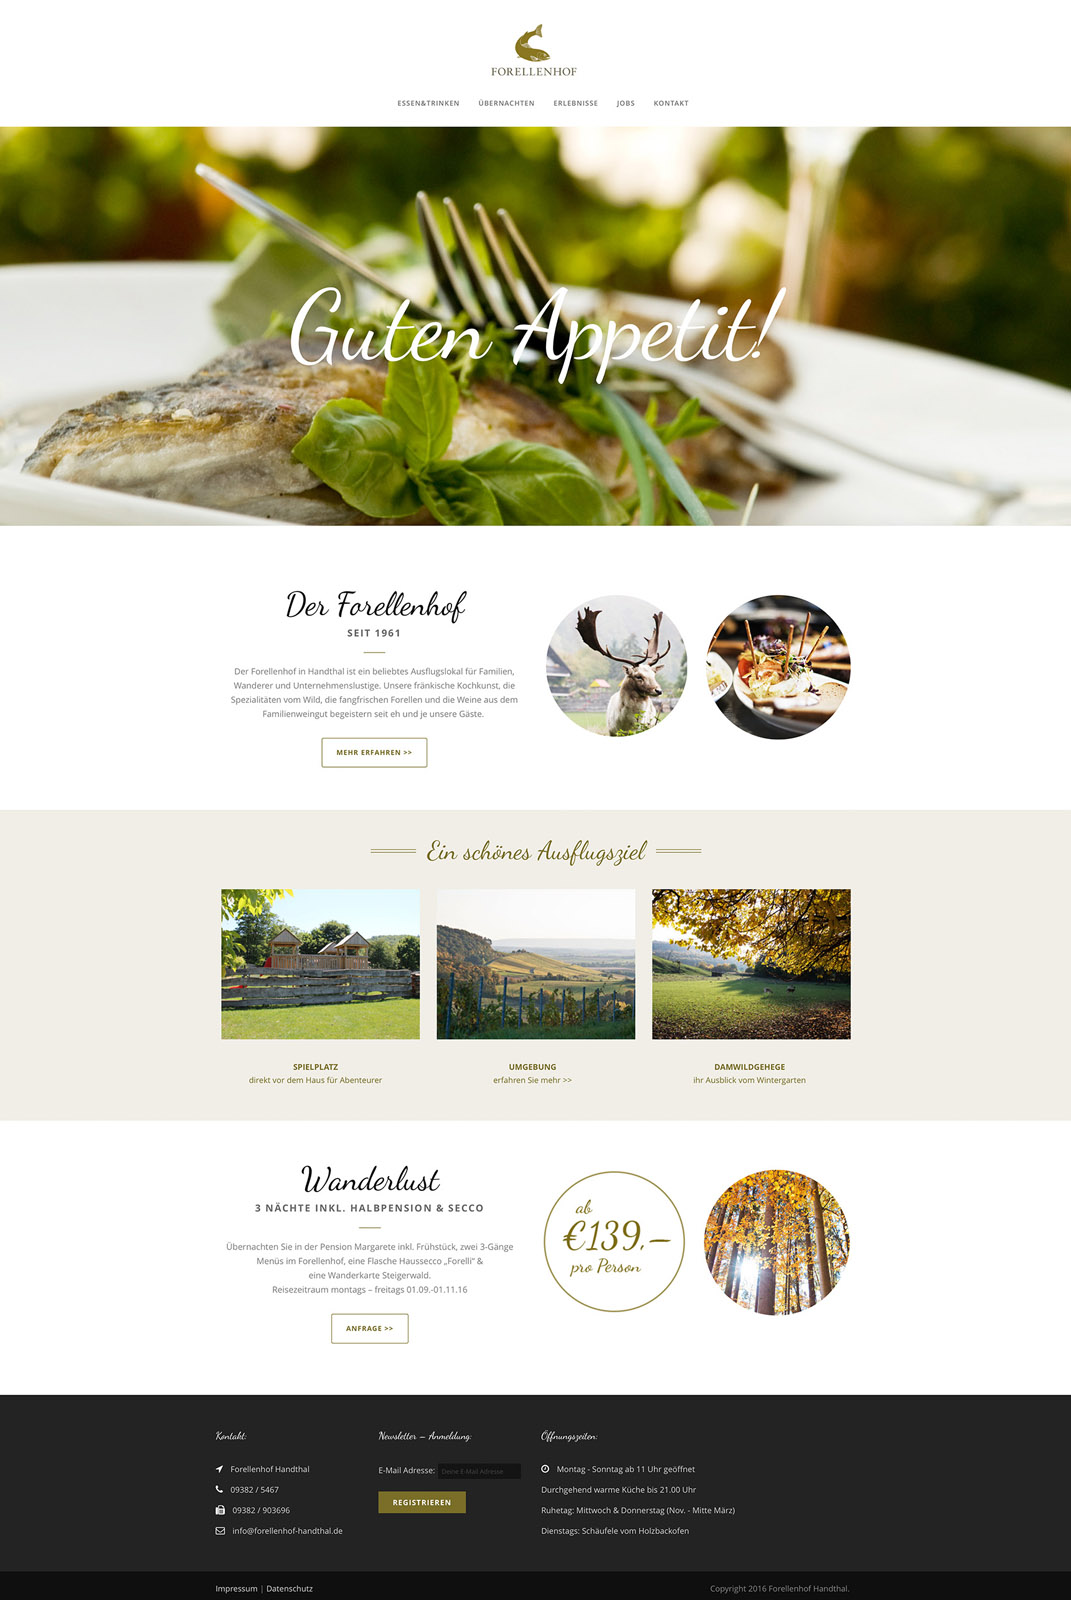 forellenhof_website_home